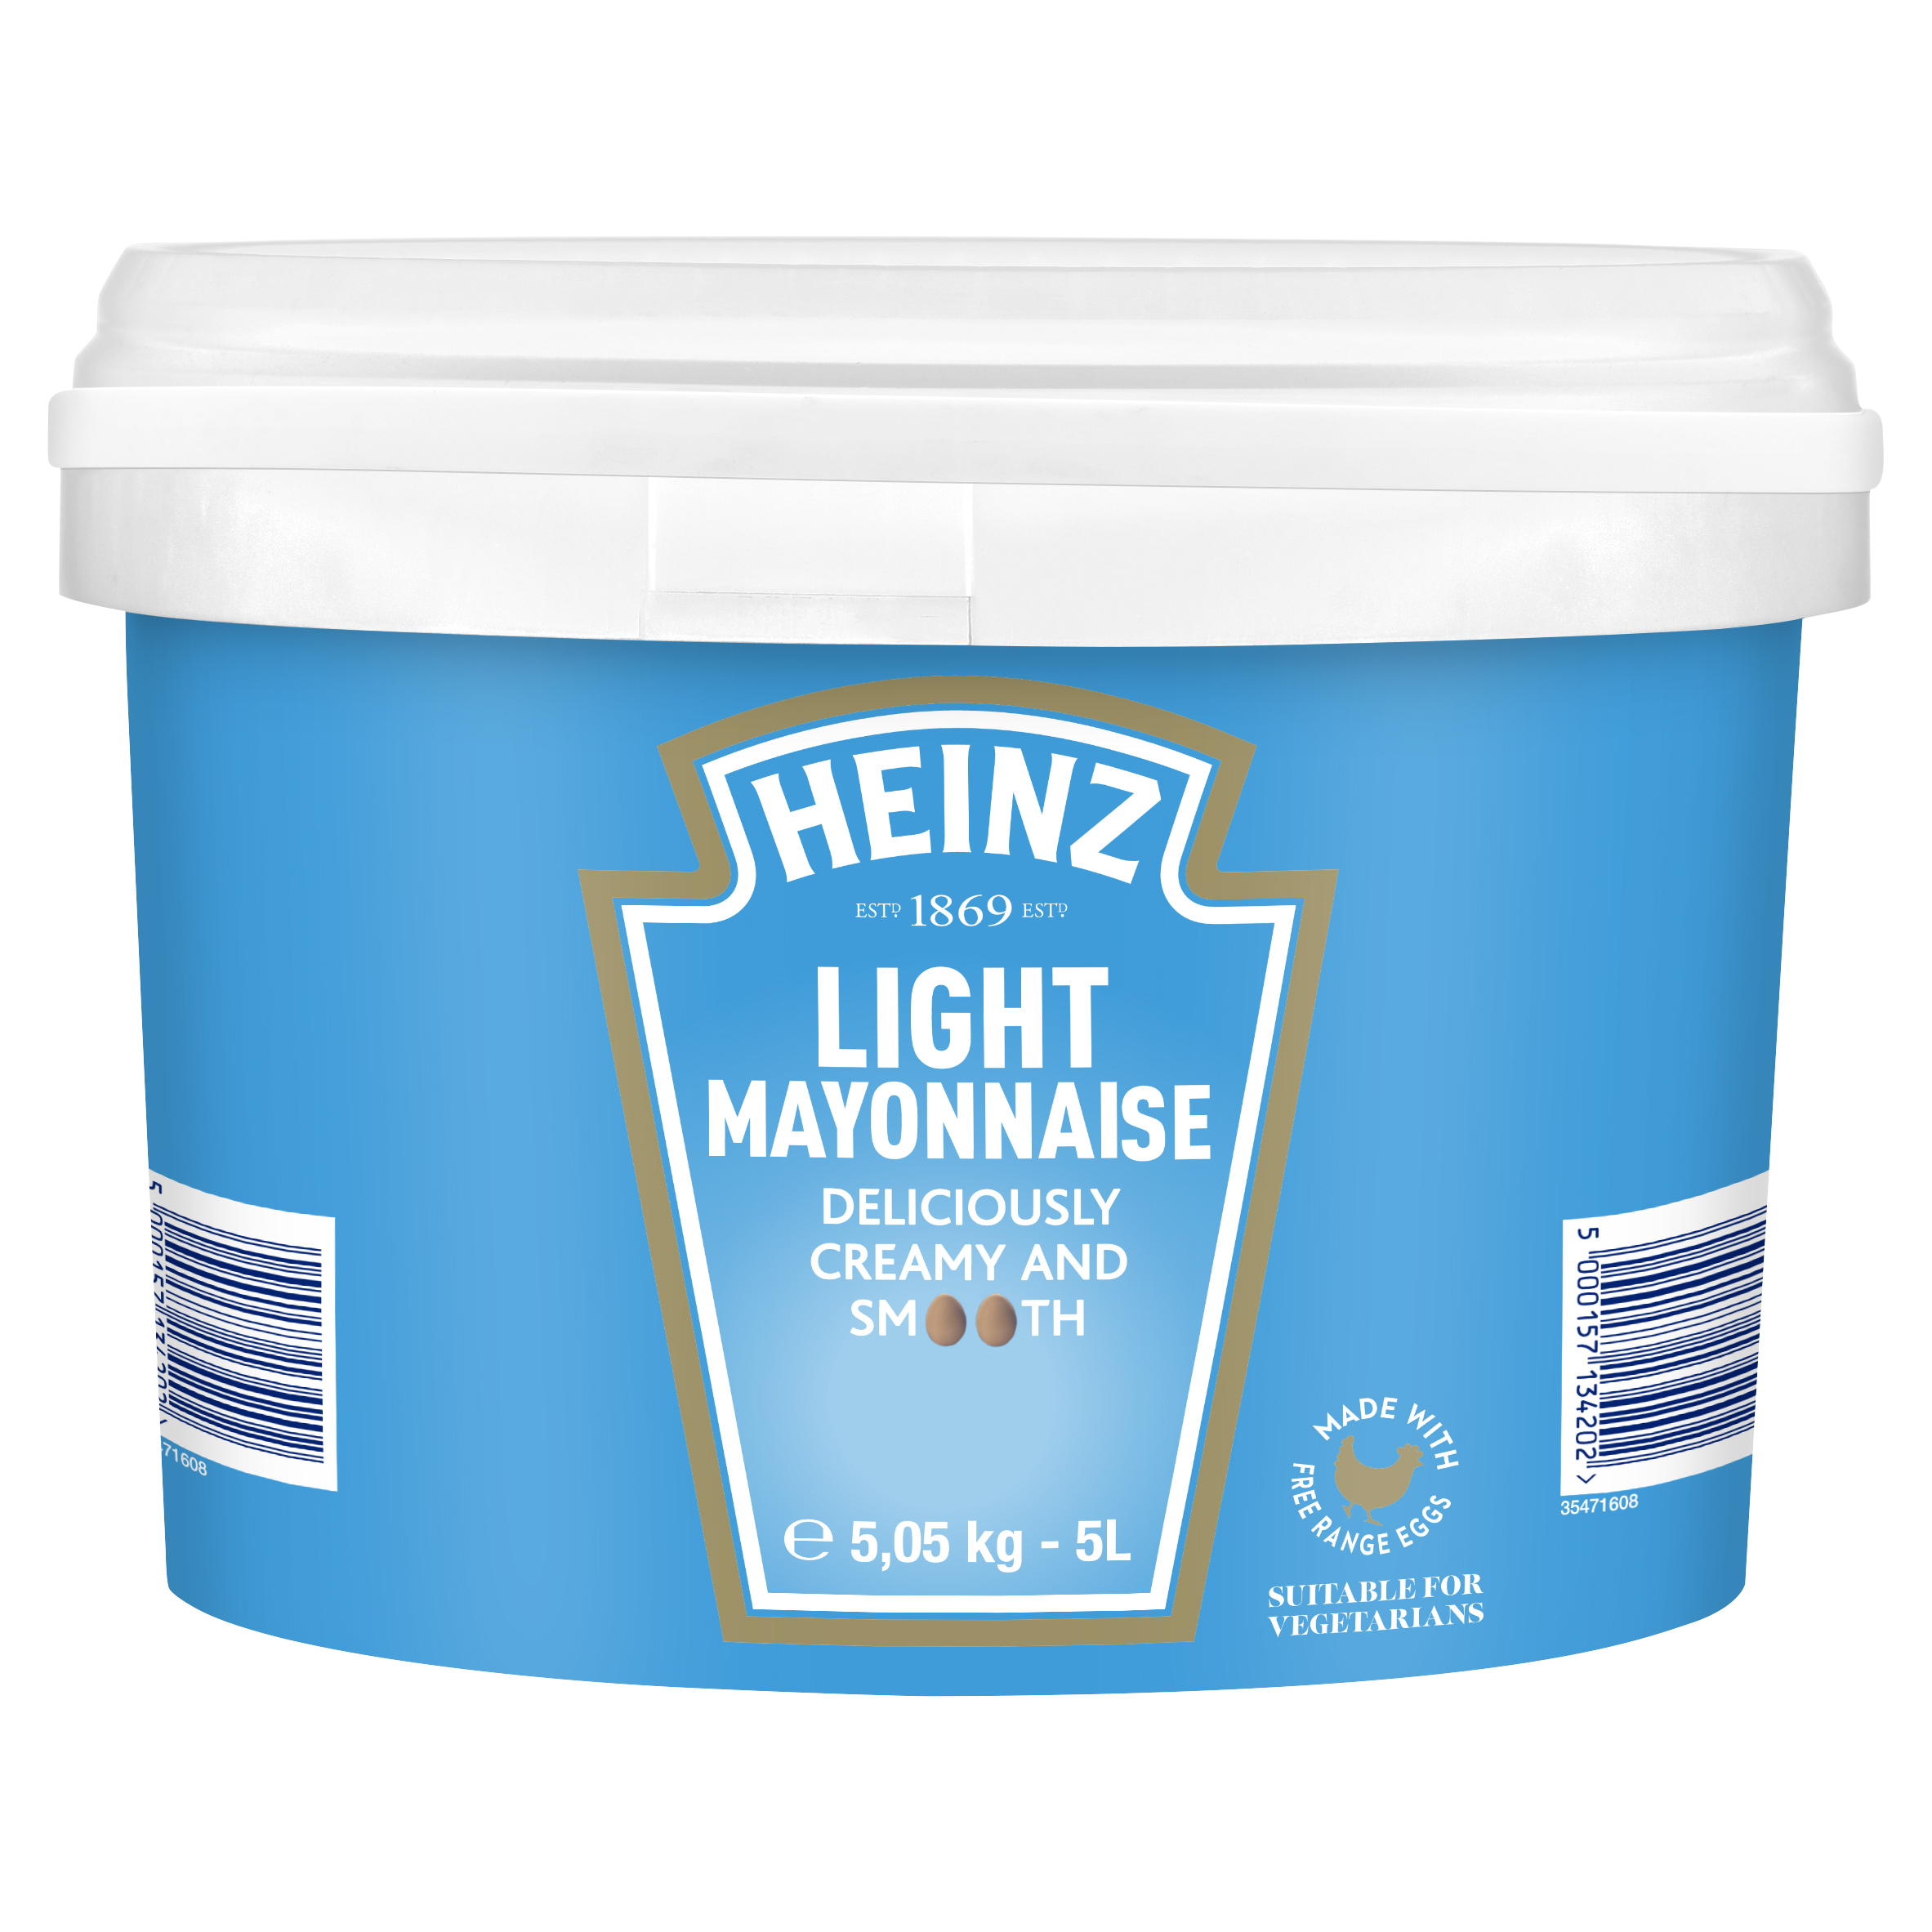 Heinz Mayonnaise Light 5L